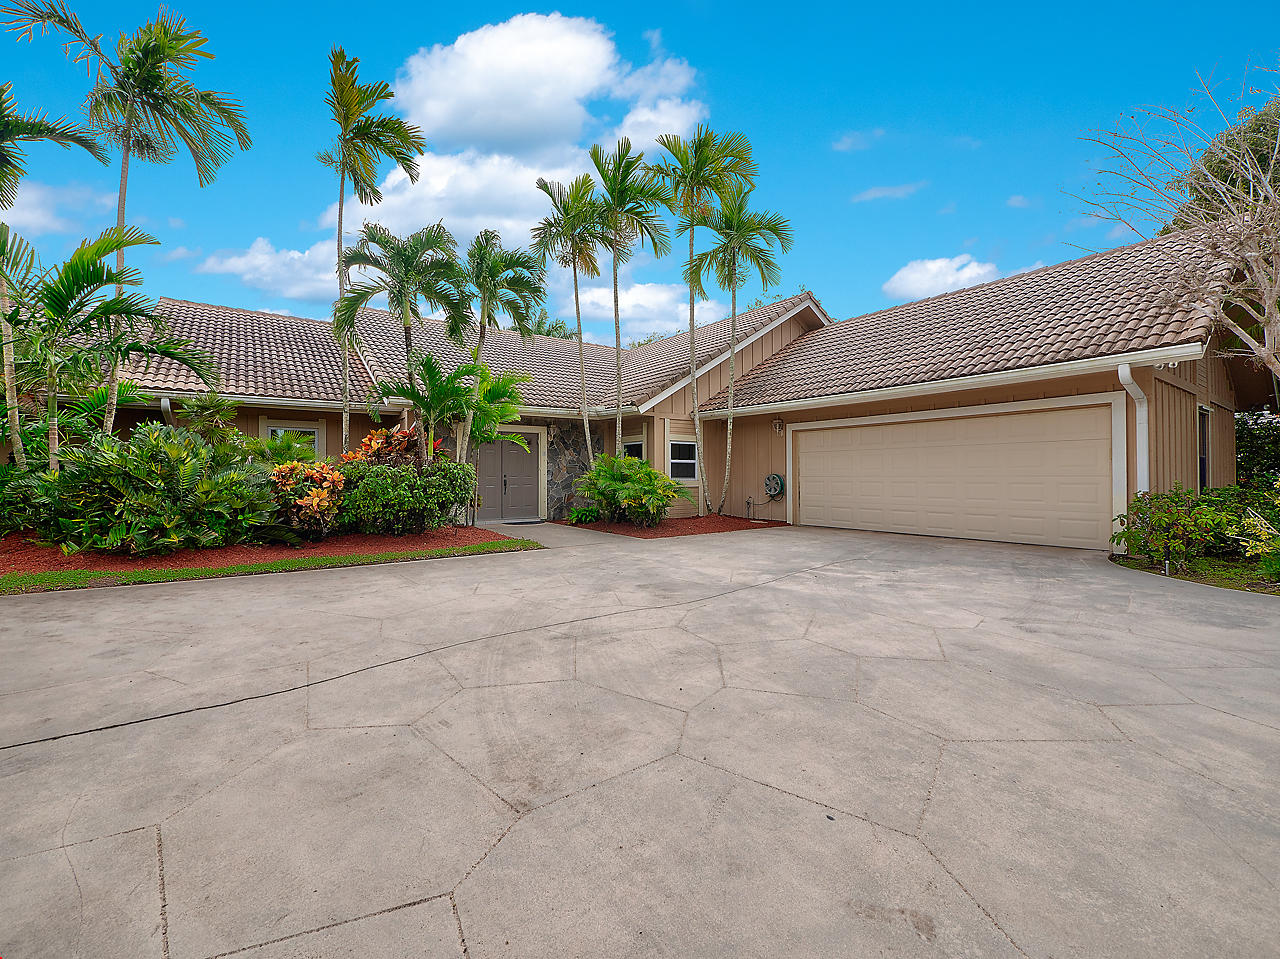 Photo of 5 River Chase Ter Terrace, Palm Beach Gardens, FL 33418